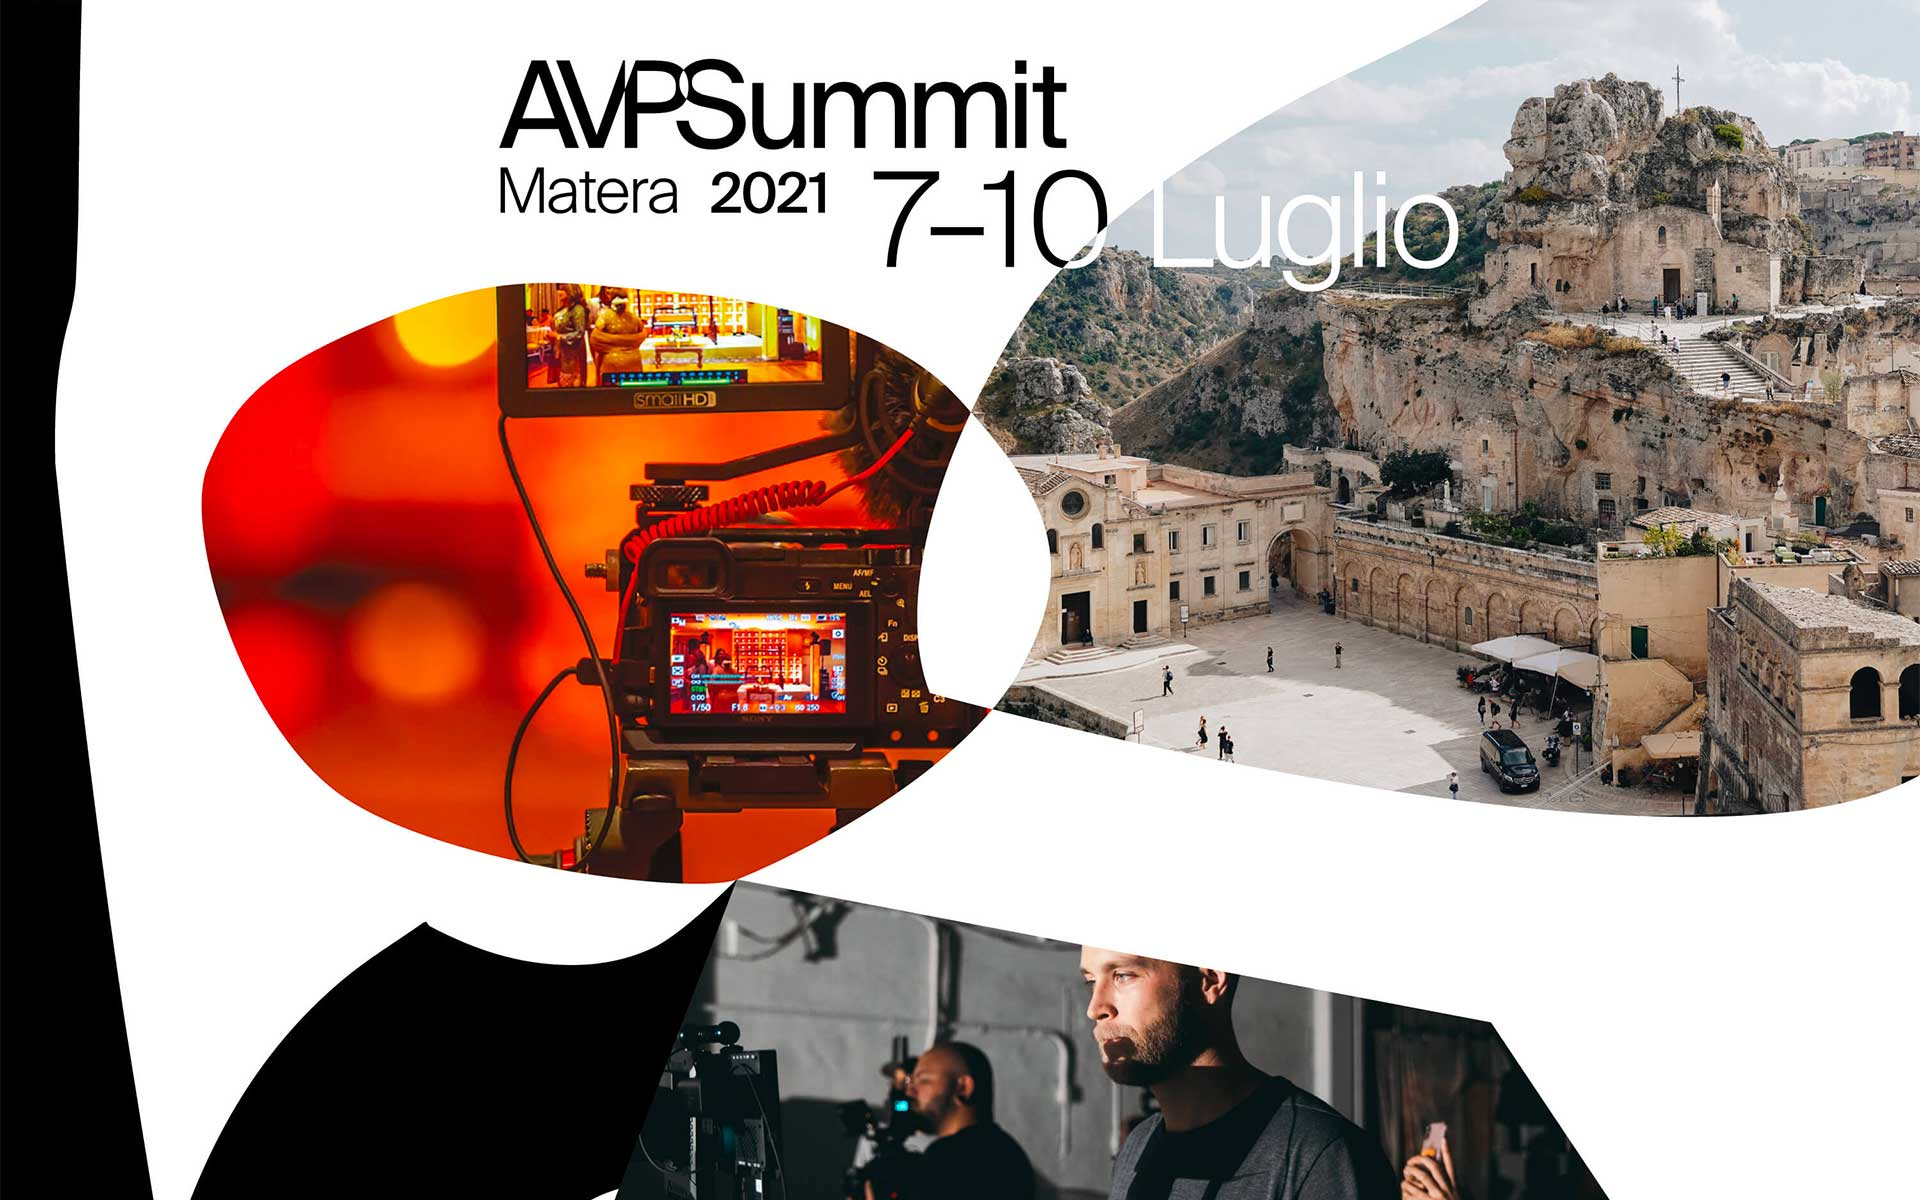 avp-summit-matera-2021-lucana-film-commission-promozione-film-fiction-spot-pubblicitari-documentari-basilicata